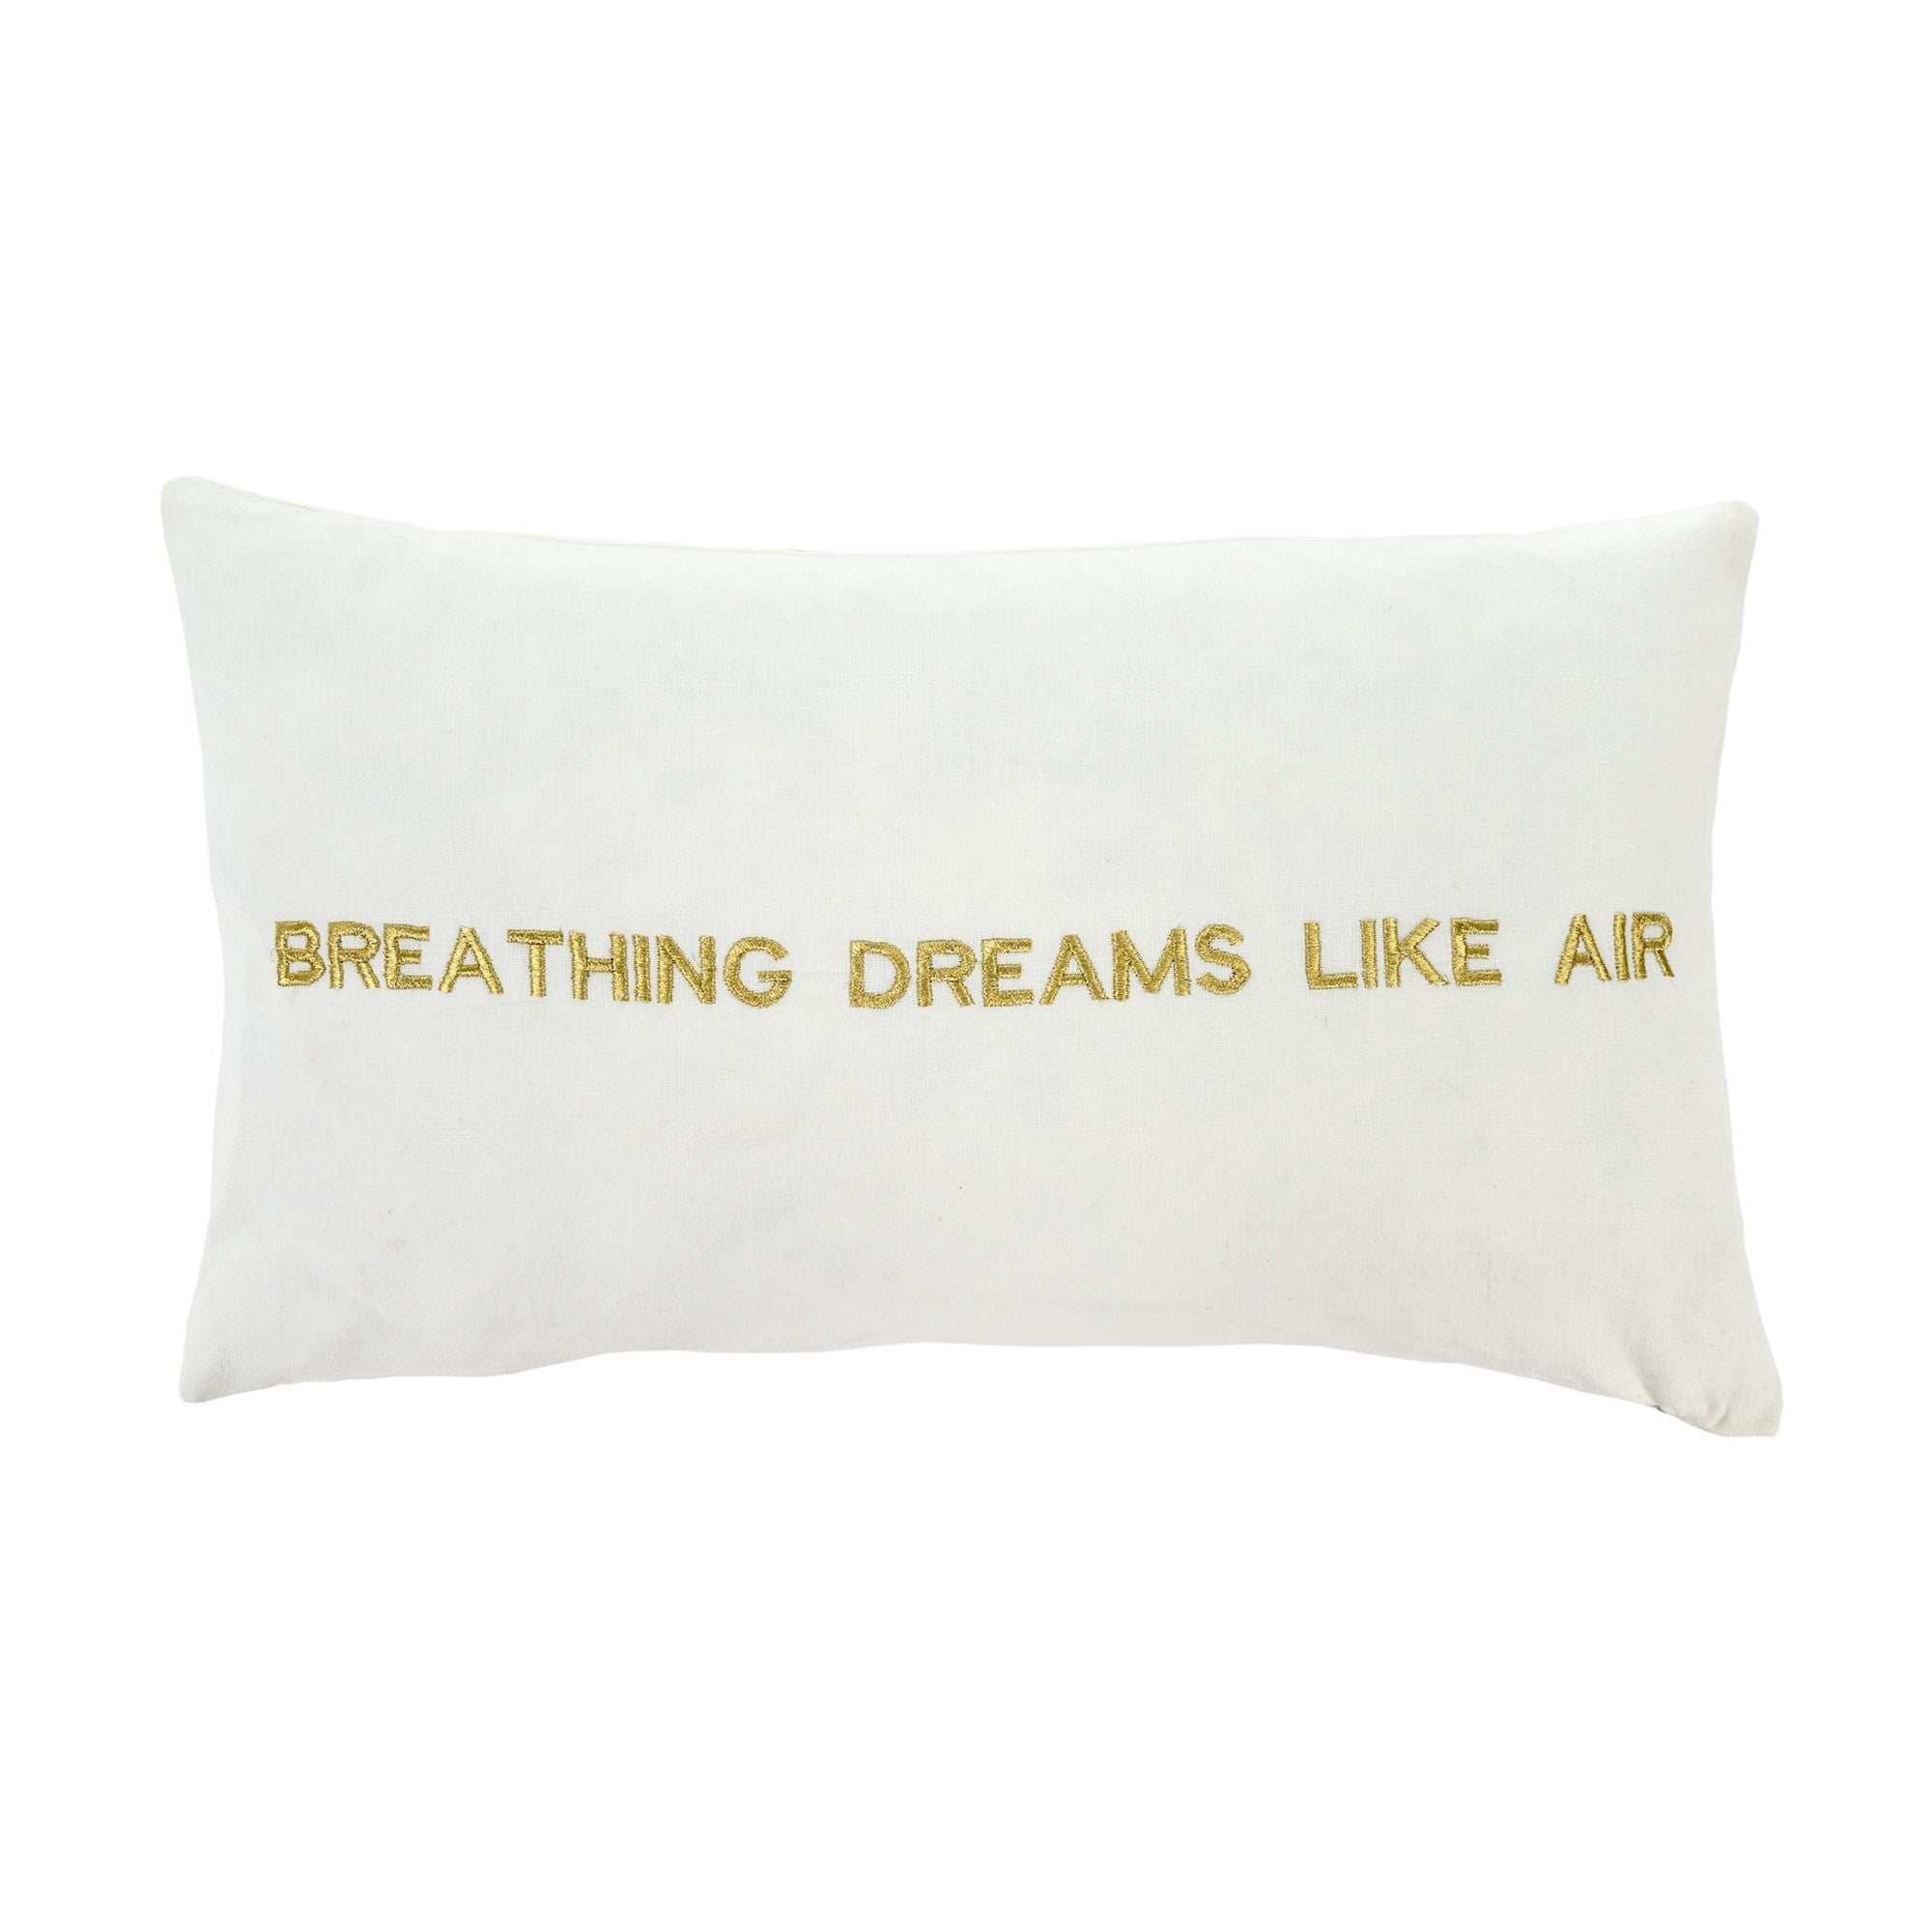 """Breathing dreams like air"" Embroidered Pillow"